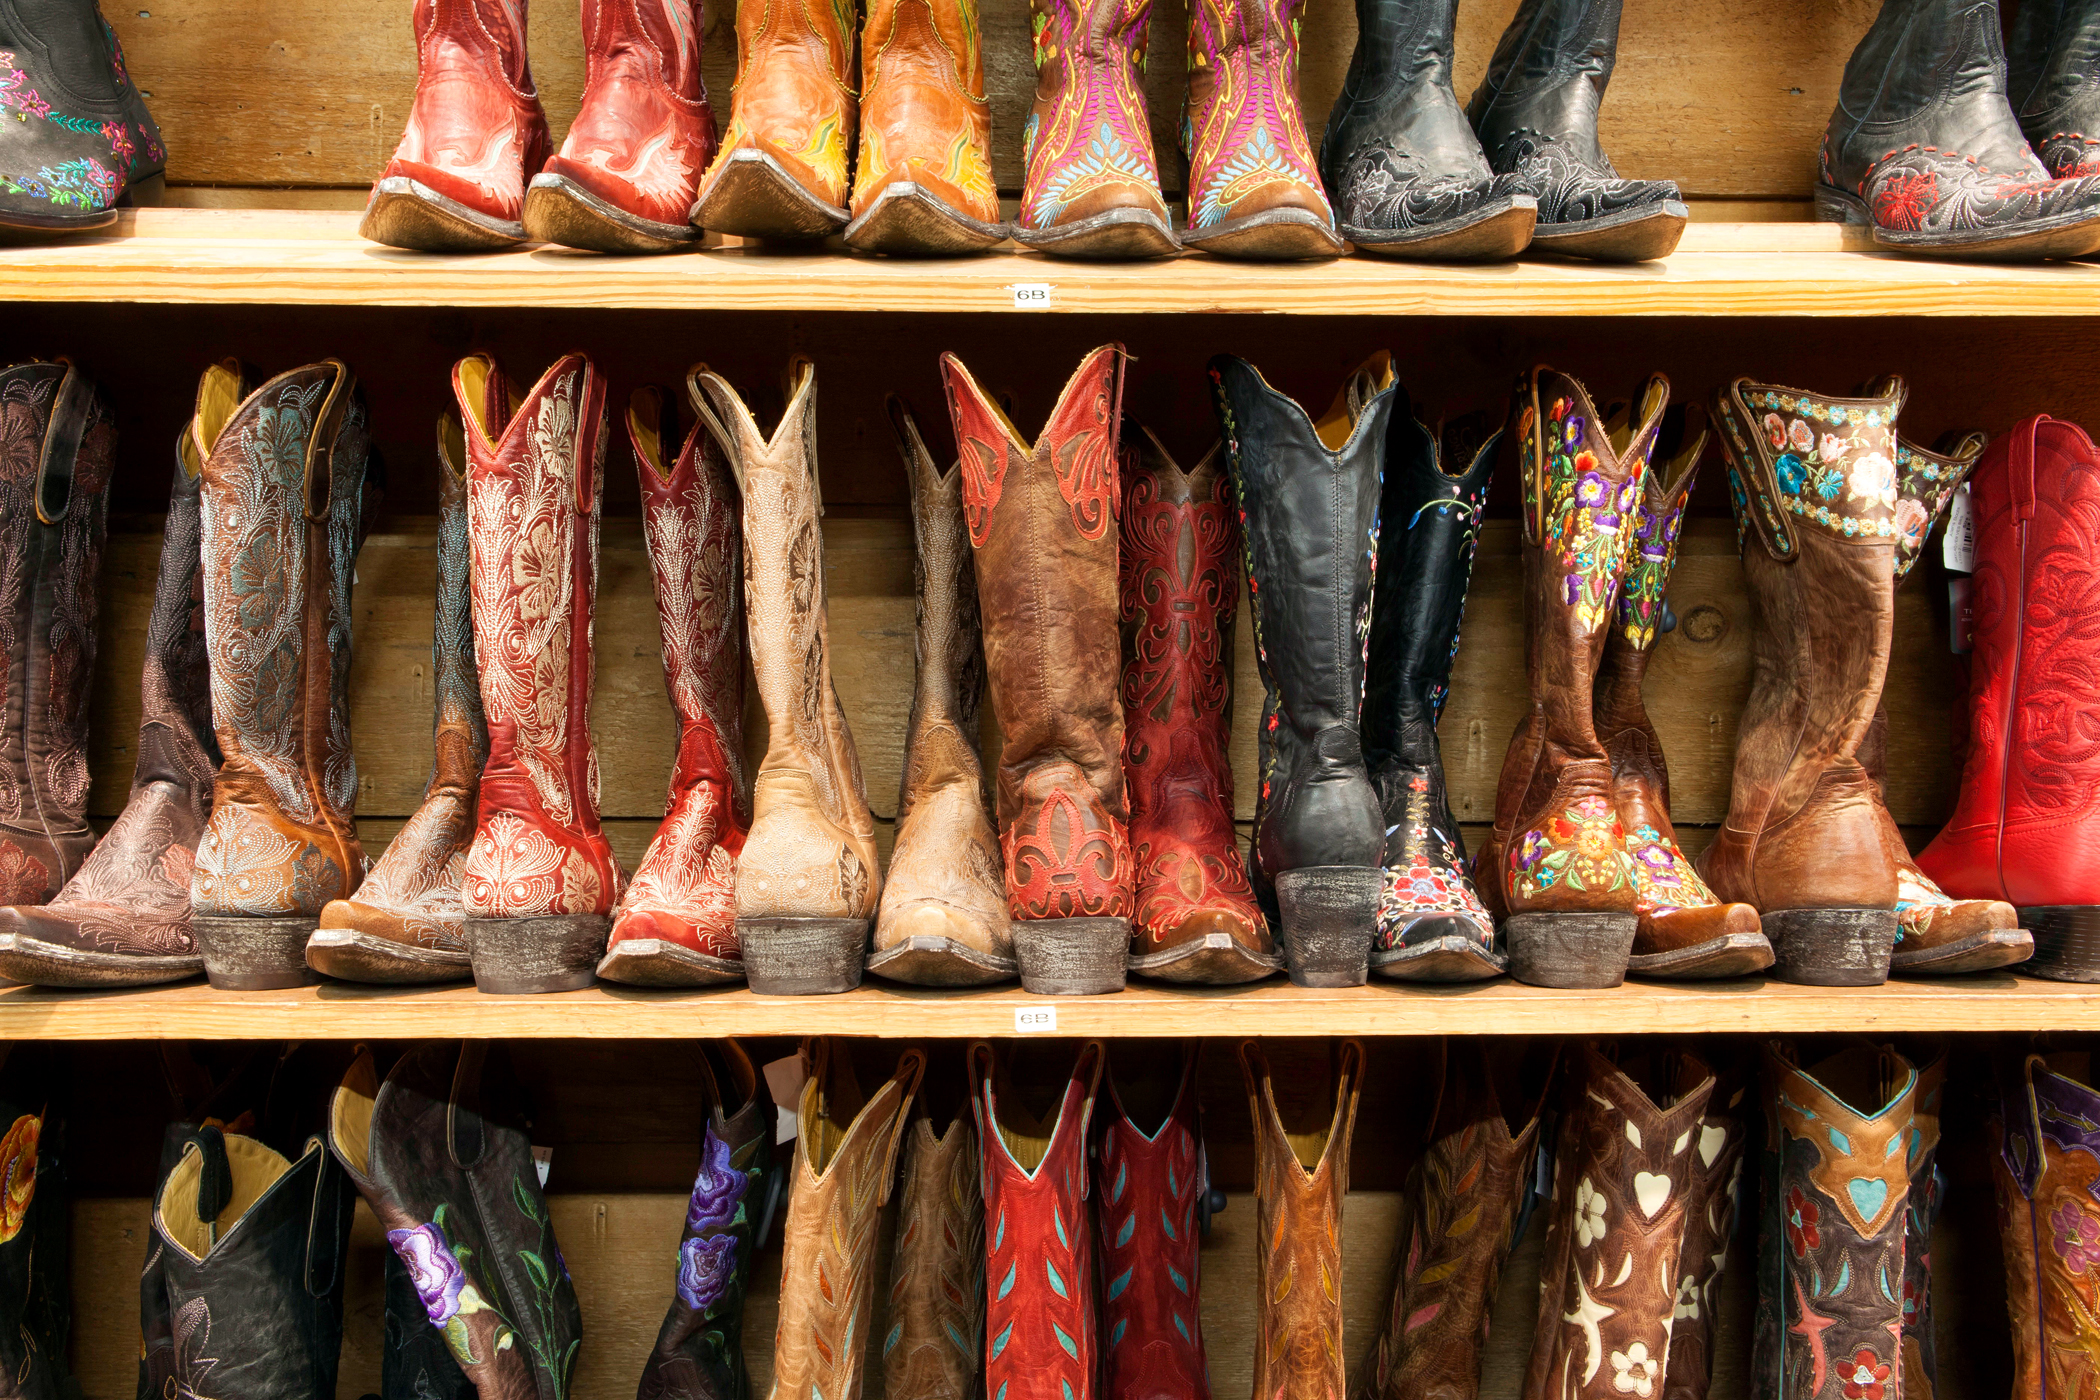 In Austin boots are a staple.